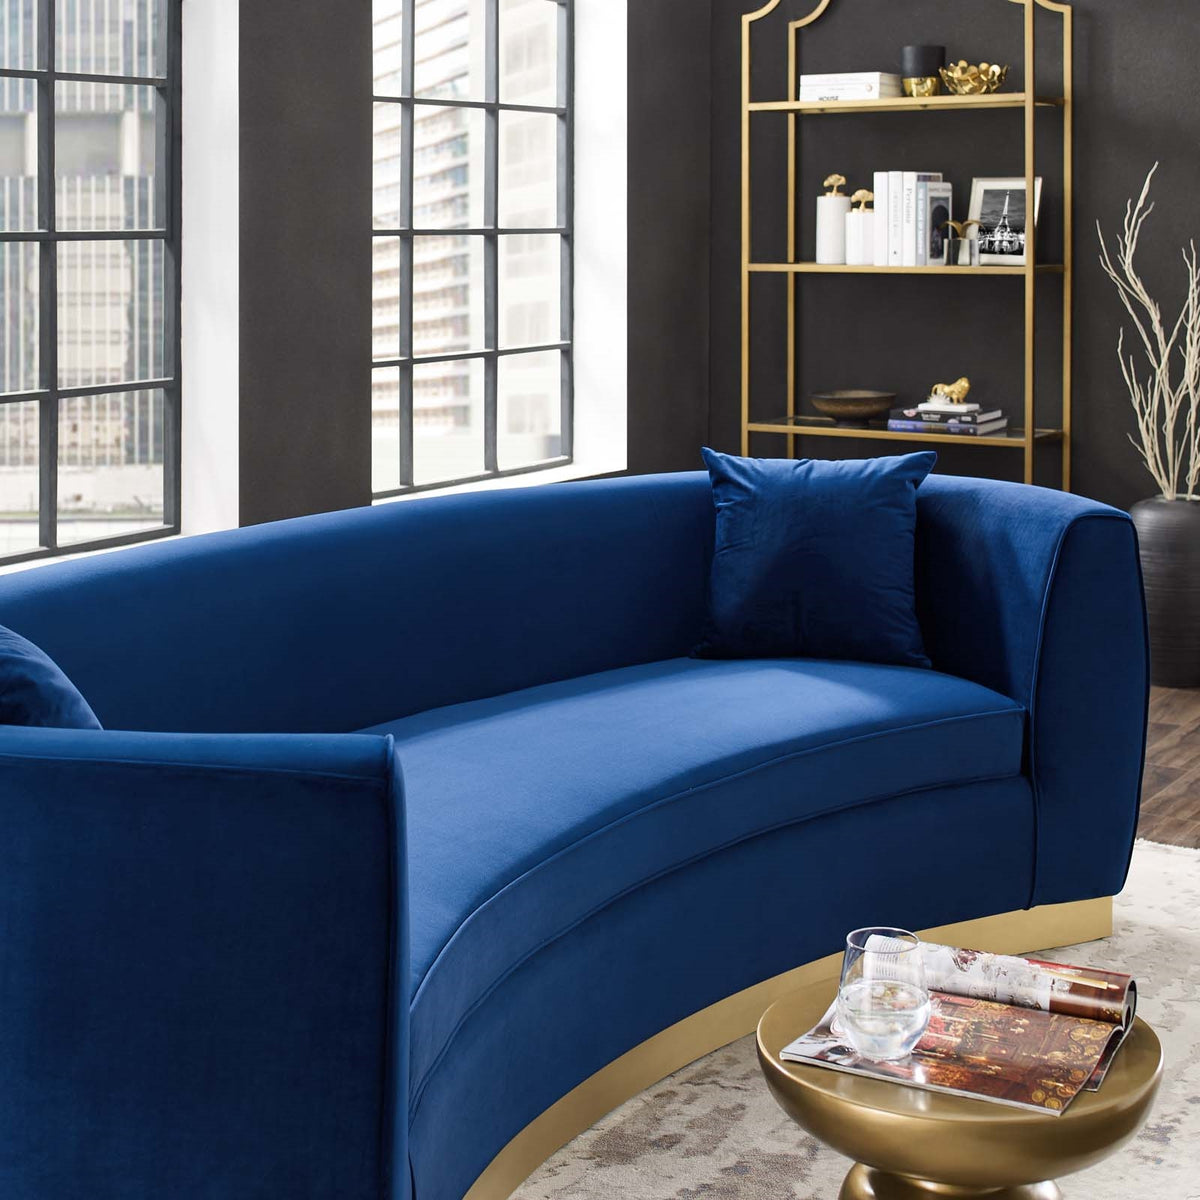 Cuxma Curved Velvet Sofa Navy